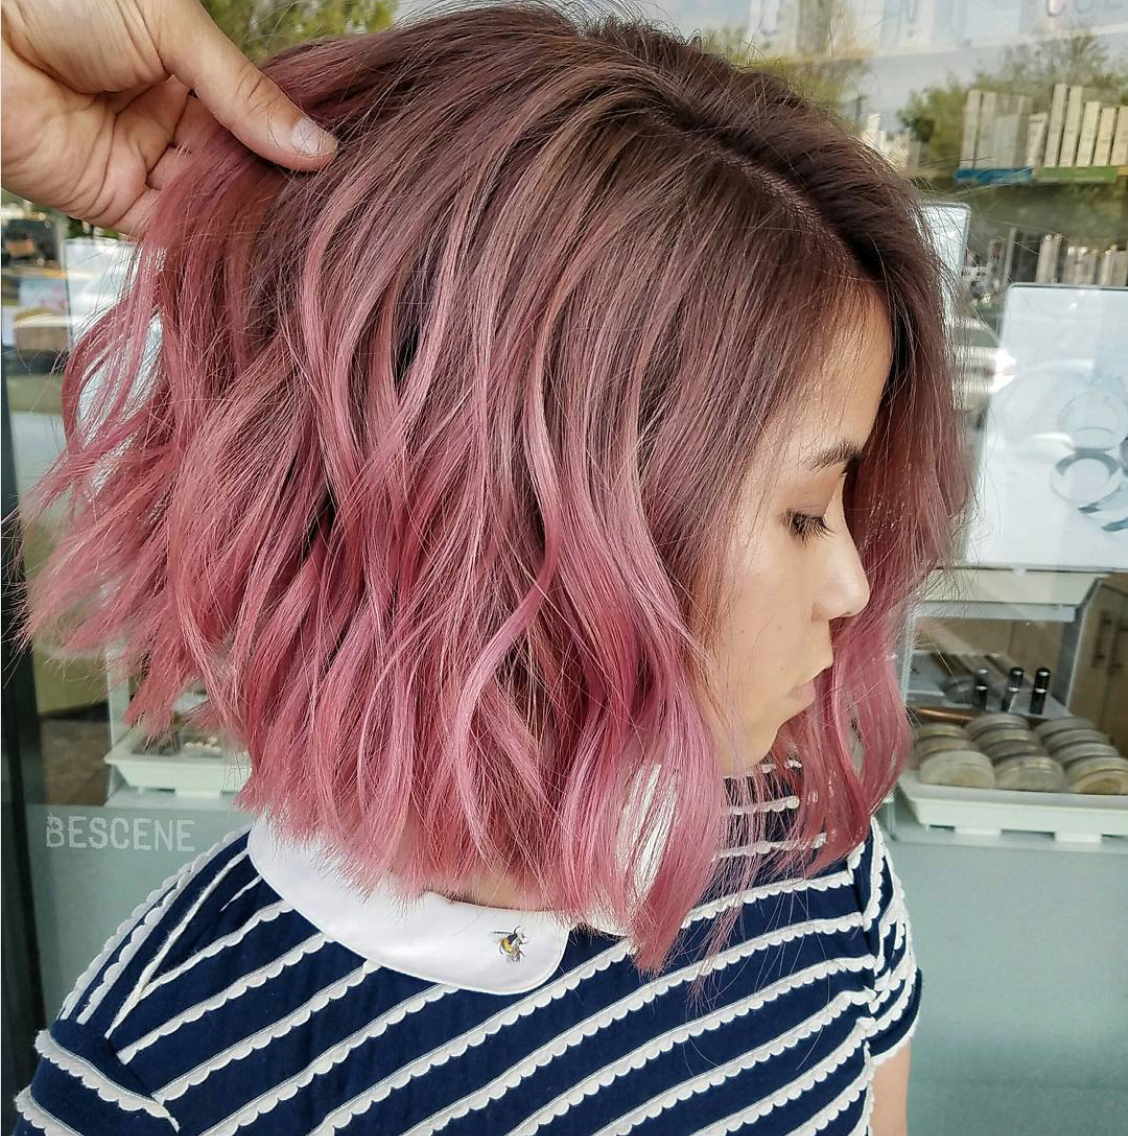 10 Short Ombre Hairstyles We Love